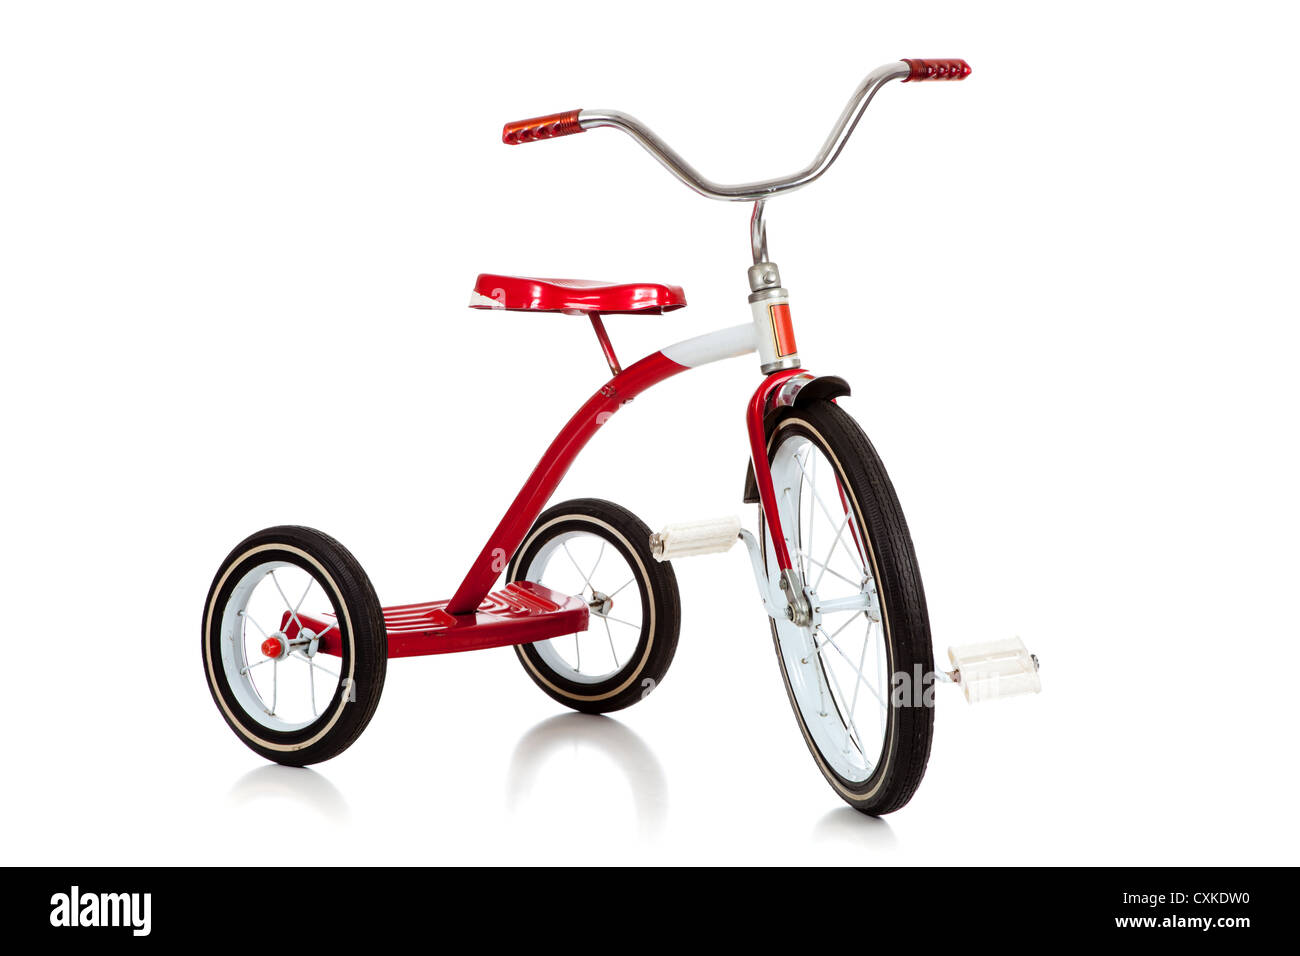 Red tricycle on a white background - Stock Image